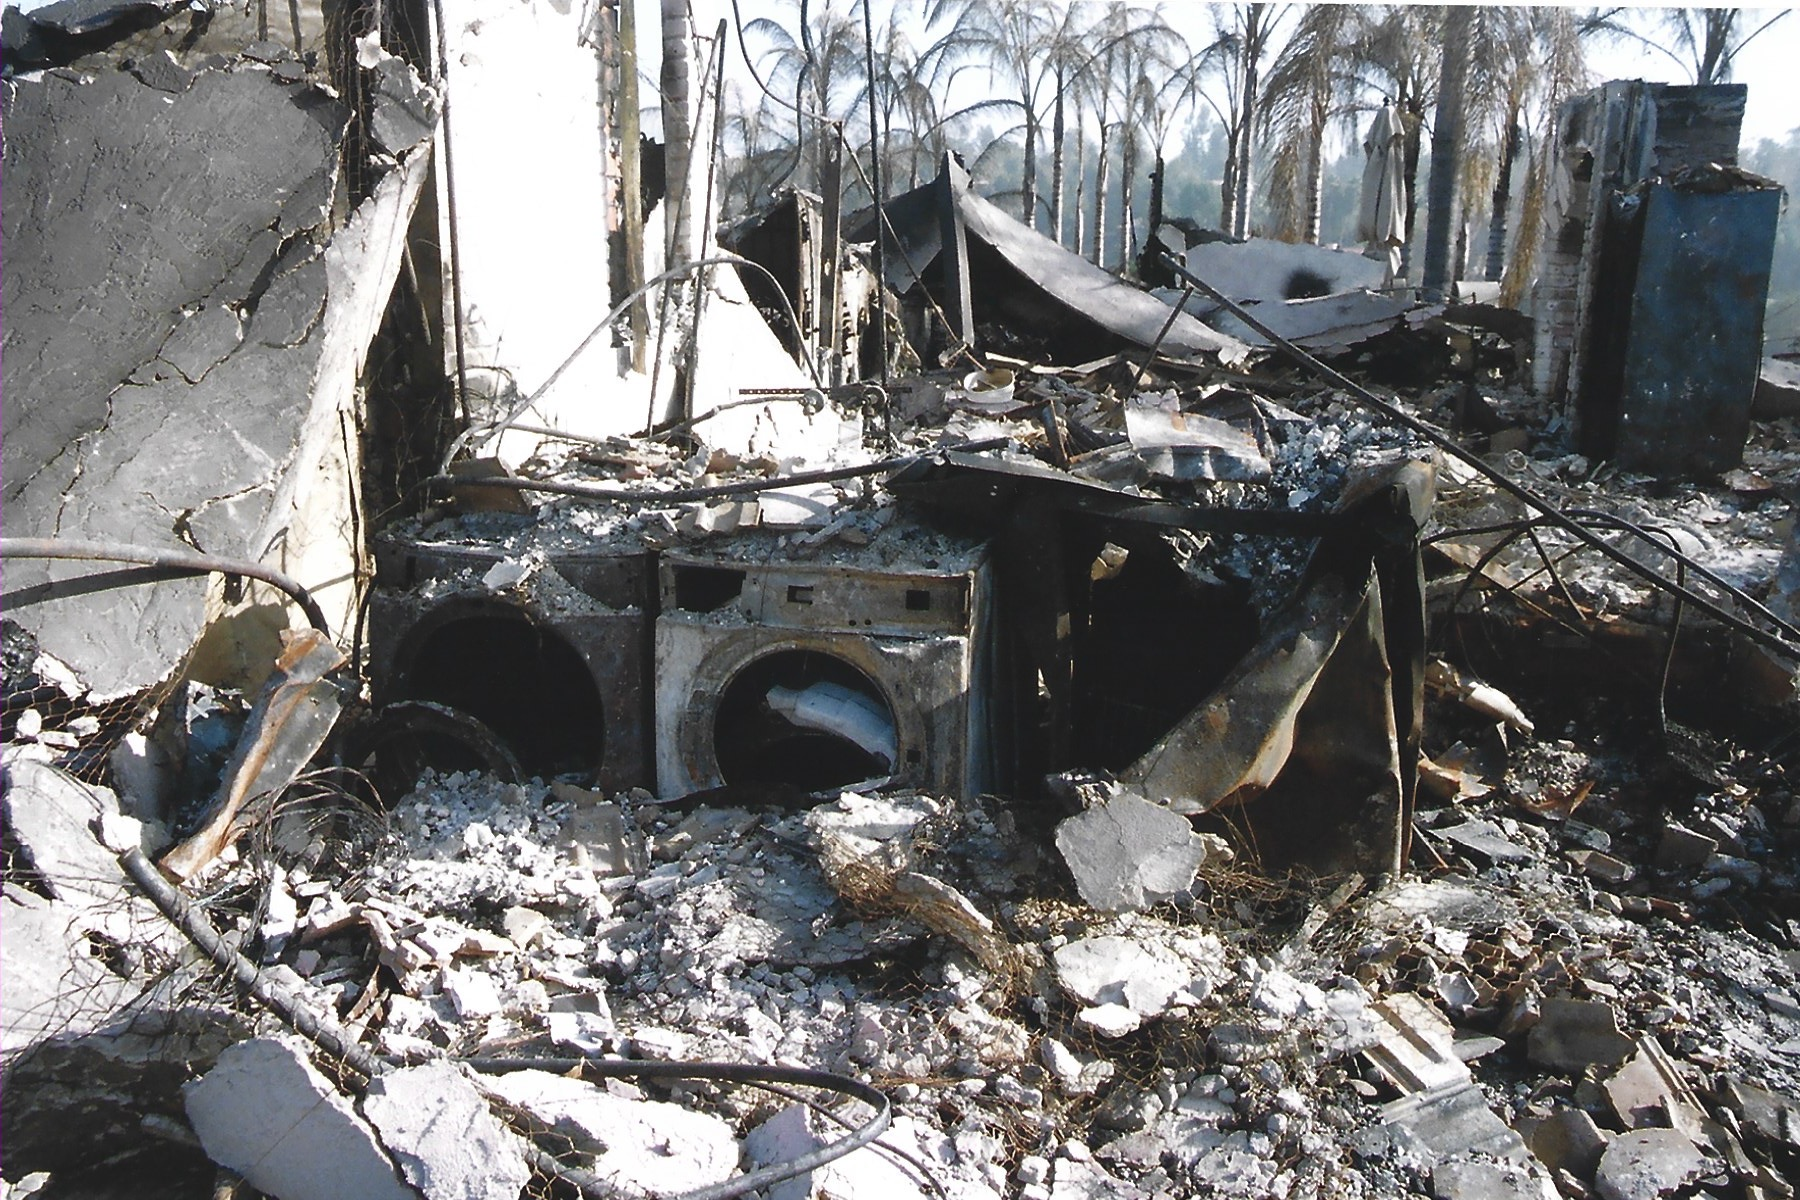 Local resident lost home to Witch Creek wildfire